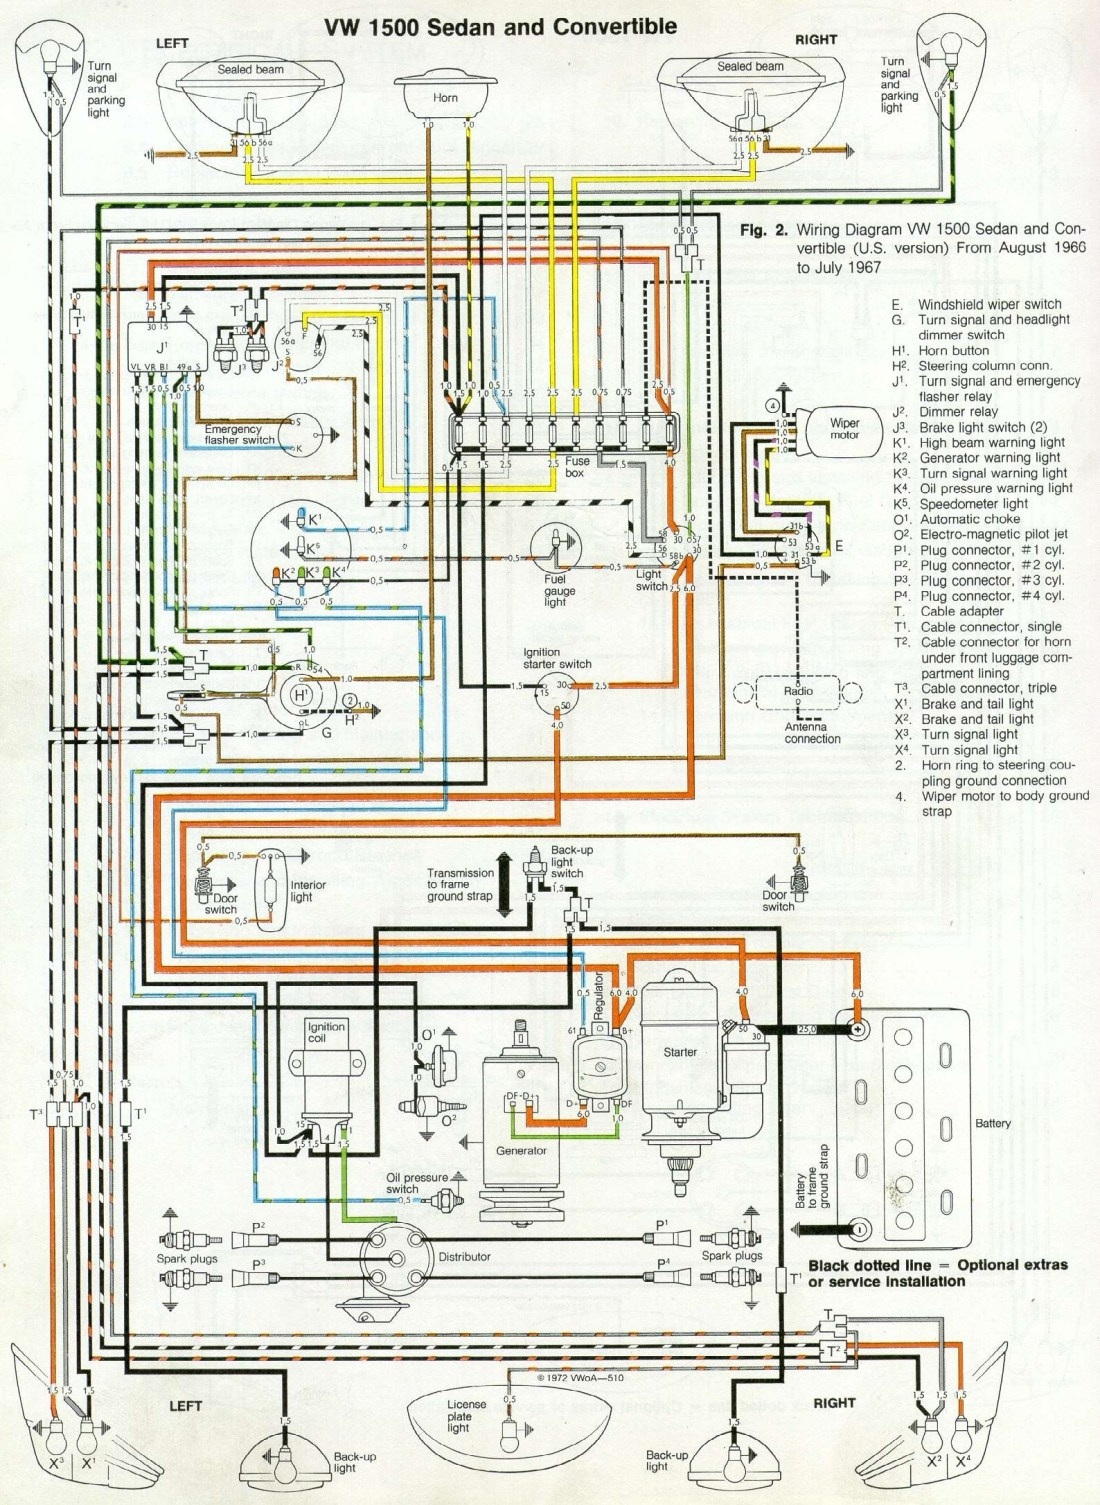 1967 Vw Beetle Wiring Diagram Color Library Toyota Sequoia Electrical Download Ive Received 4 Emails In The Last 2 Weeks Asking For Correct